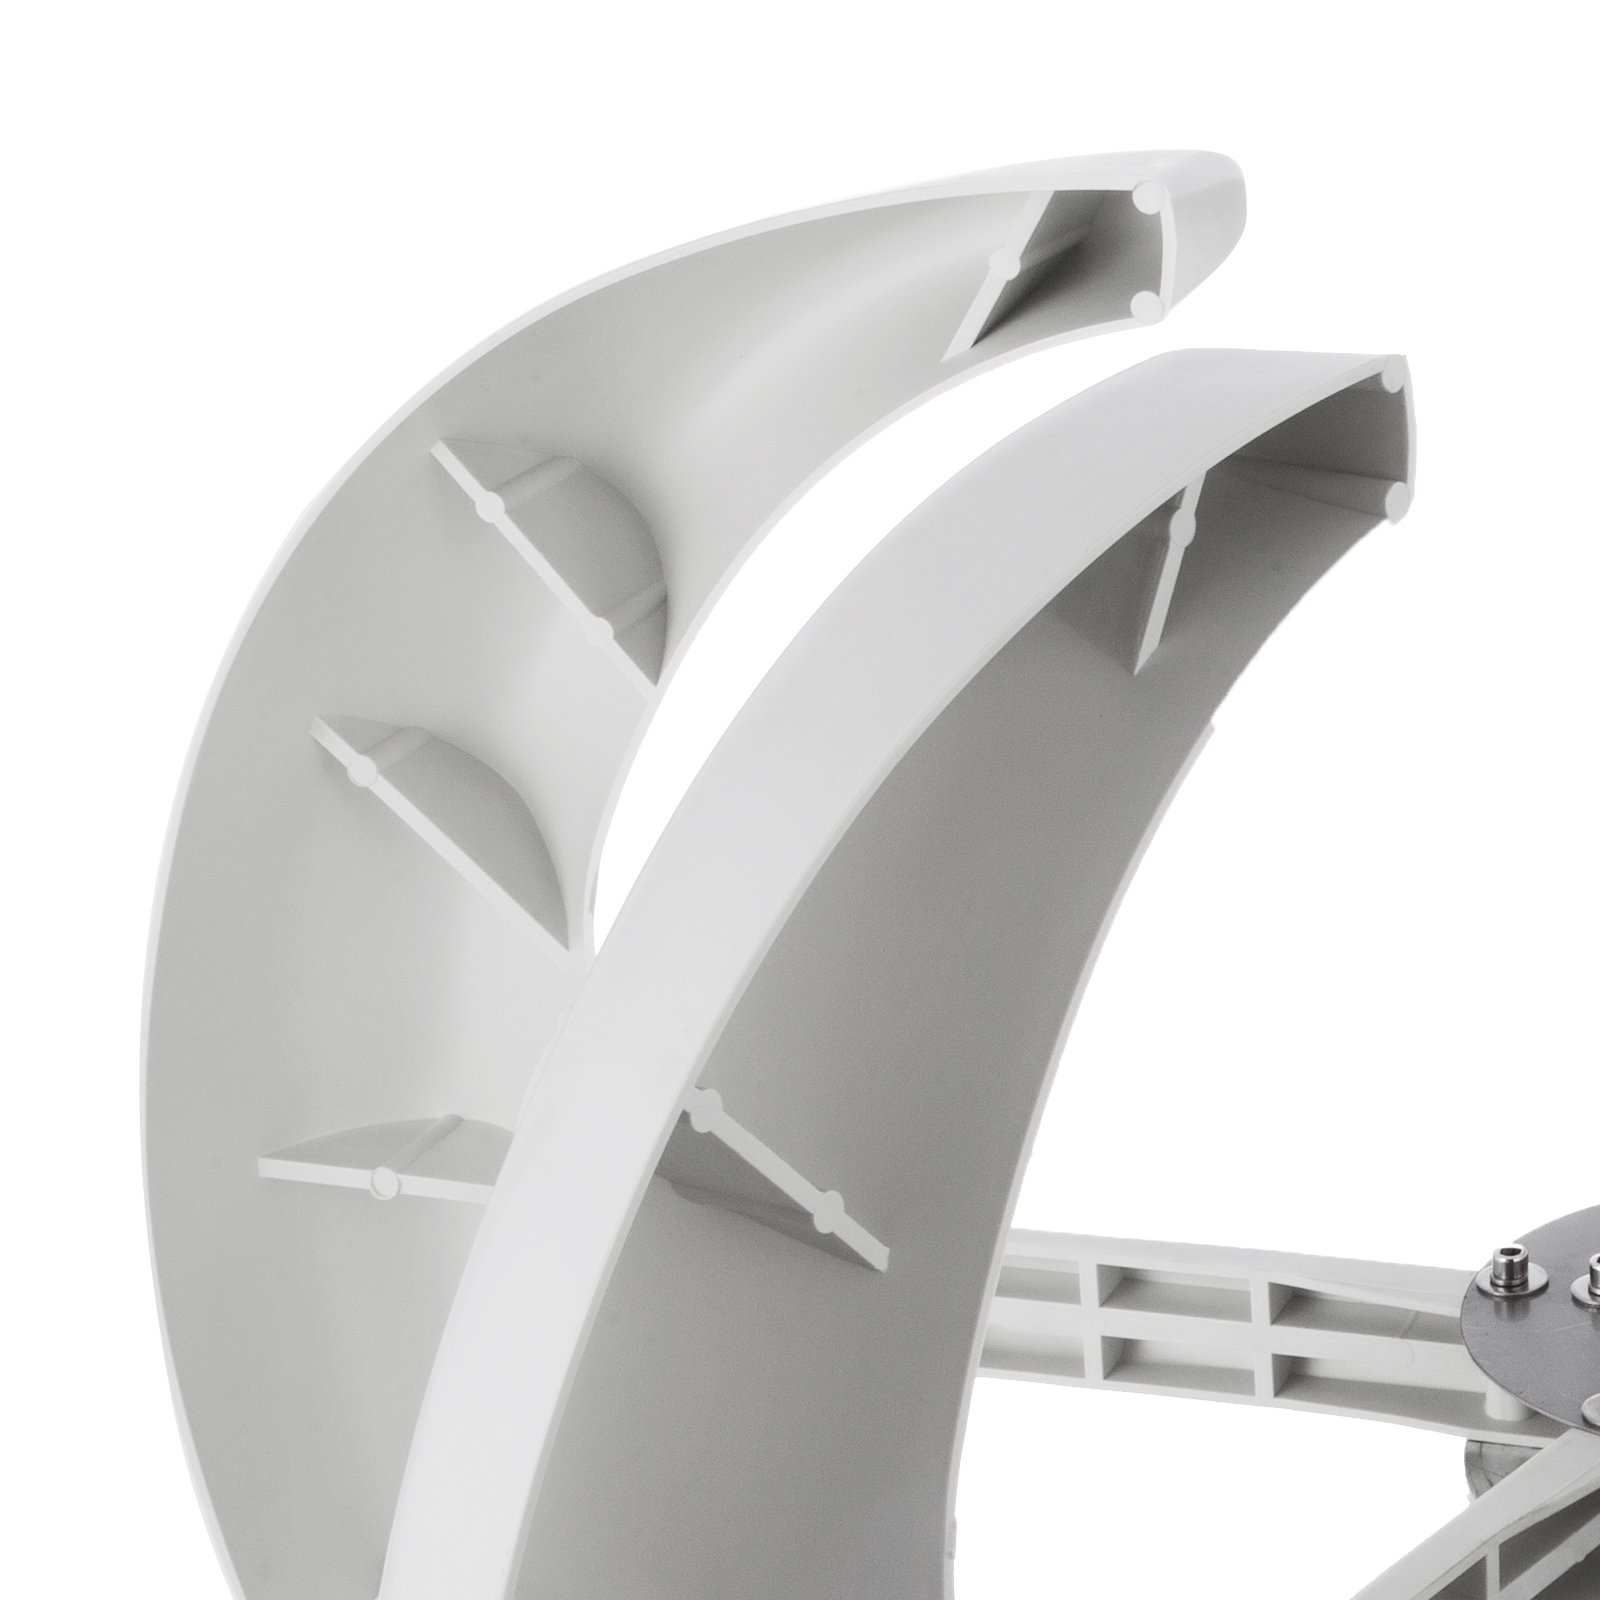 Happybuy Wind Turbine 400W DC 12V Wind Turbine Generator Kit 5 Blades Vertical Wind Power Turbine Generato White Lantern Style with Charge Controller for Power Supplementation by Happybuy (Image #5)